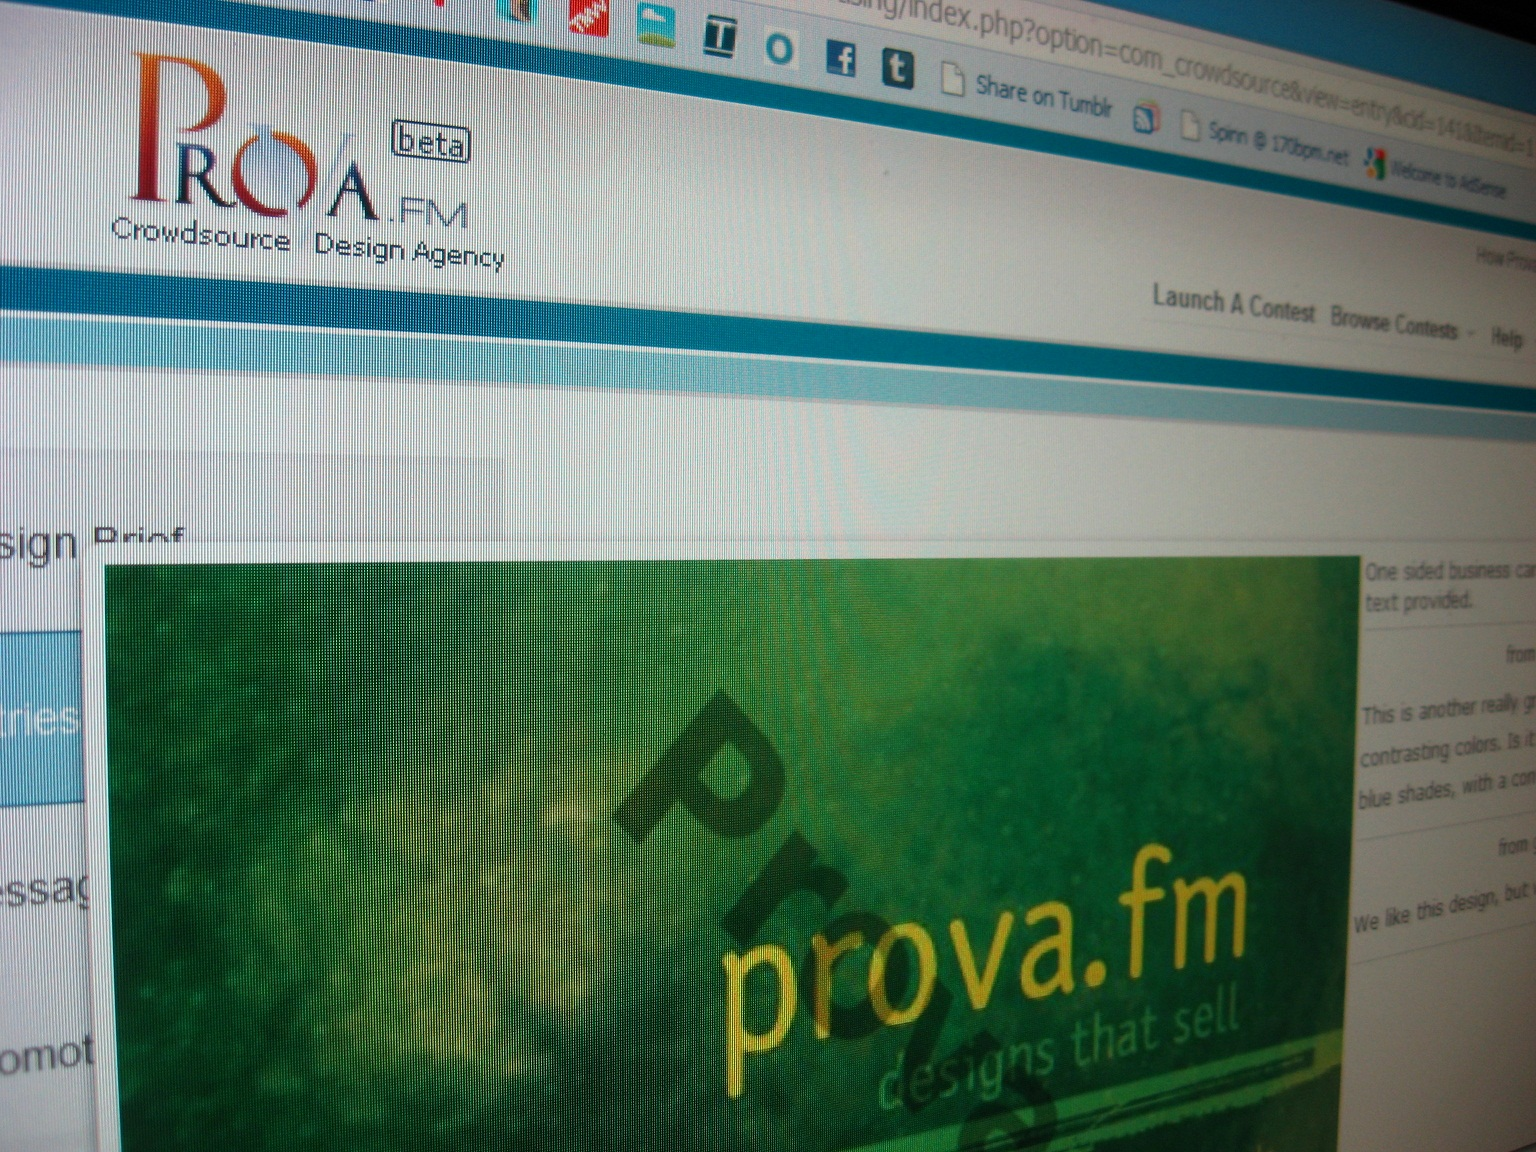 Prova.fm wants to change the face of crowdsourced design.